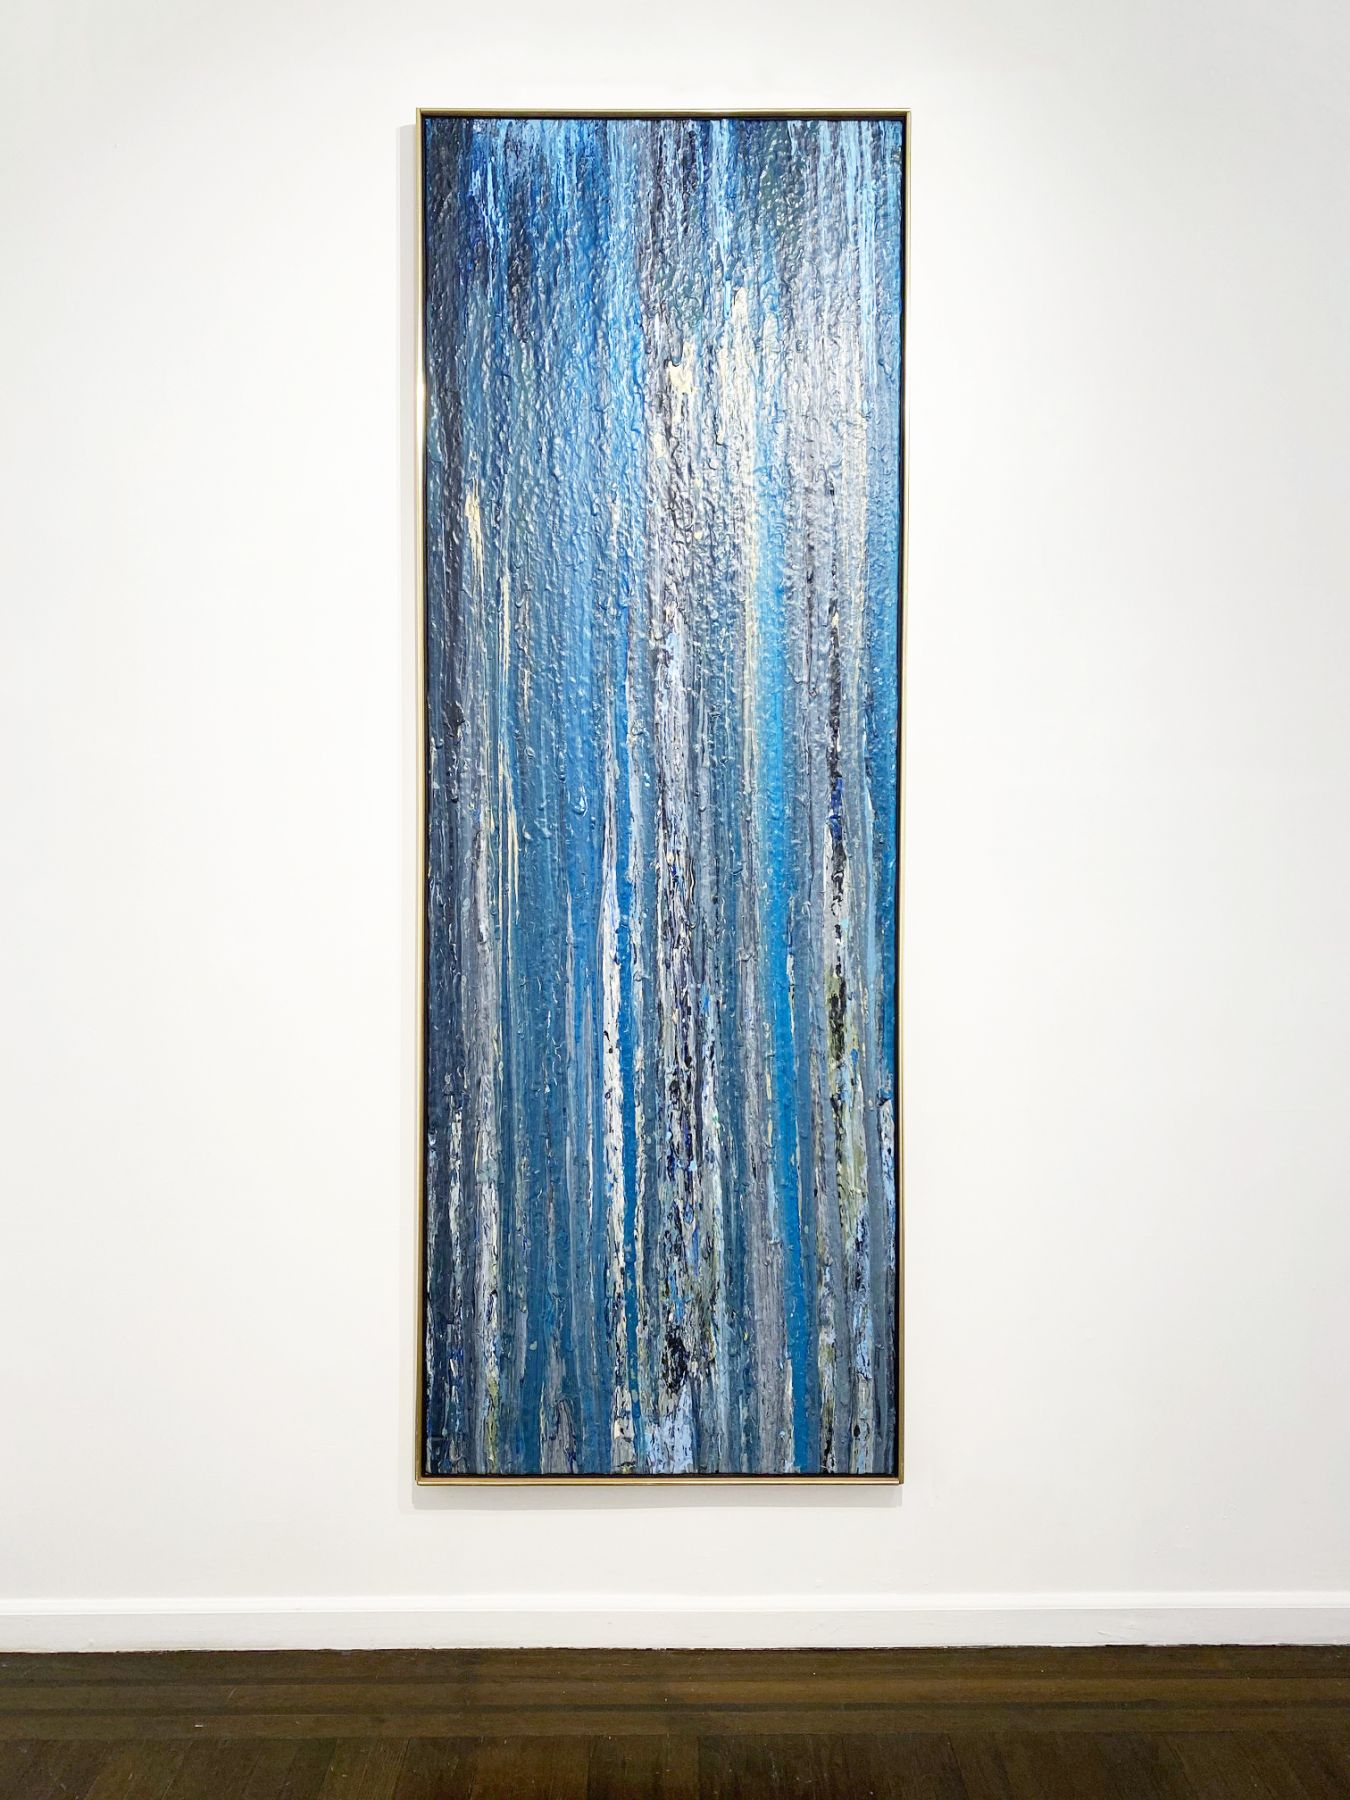 Larry Poons, Untitled, 1978